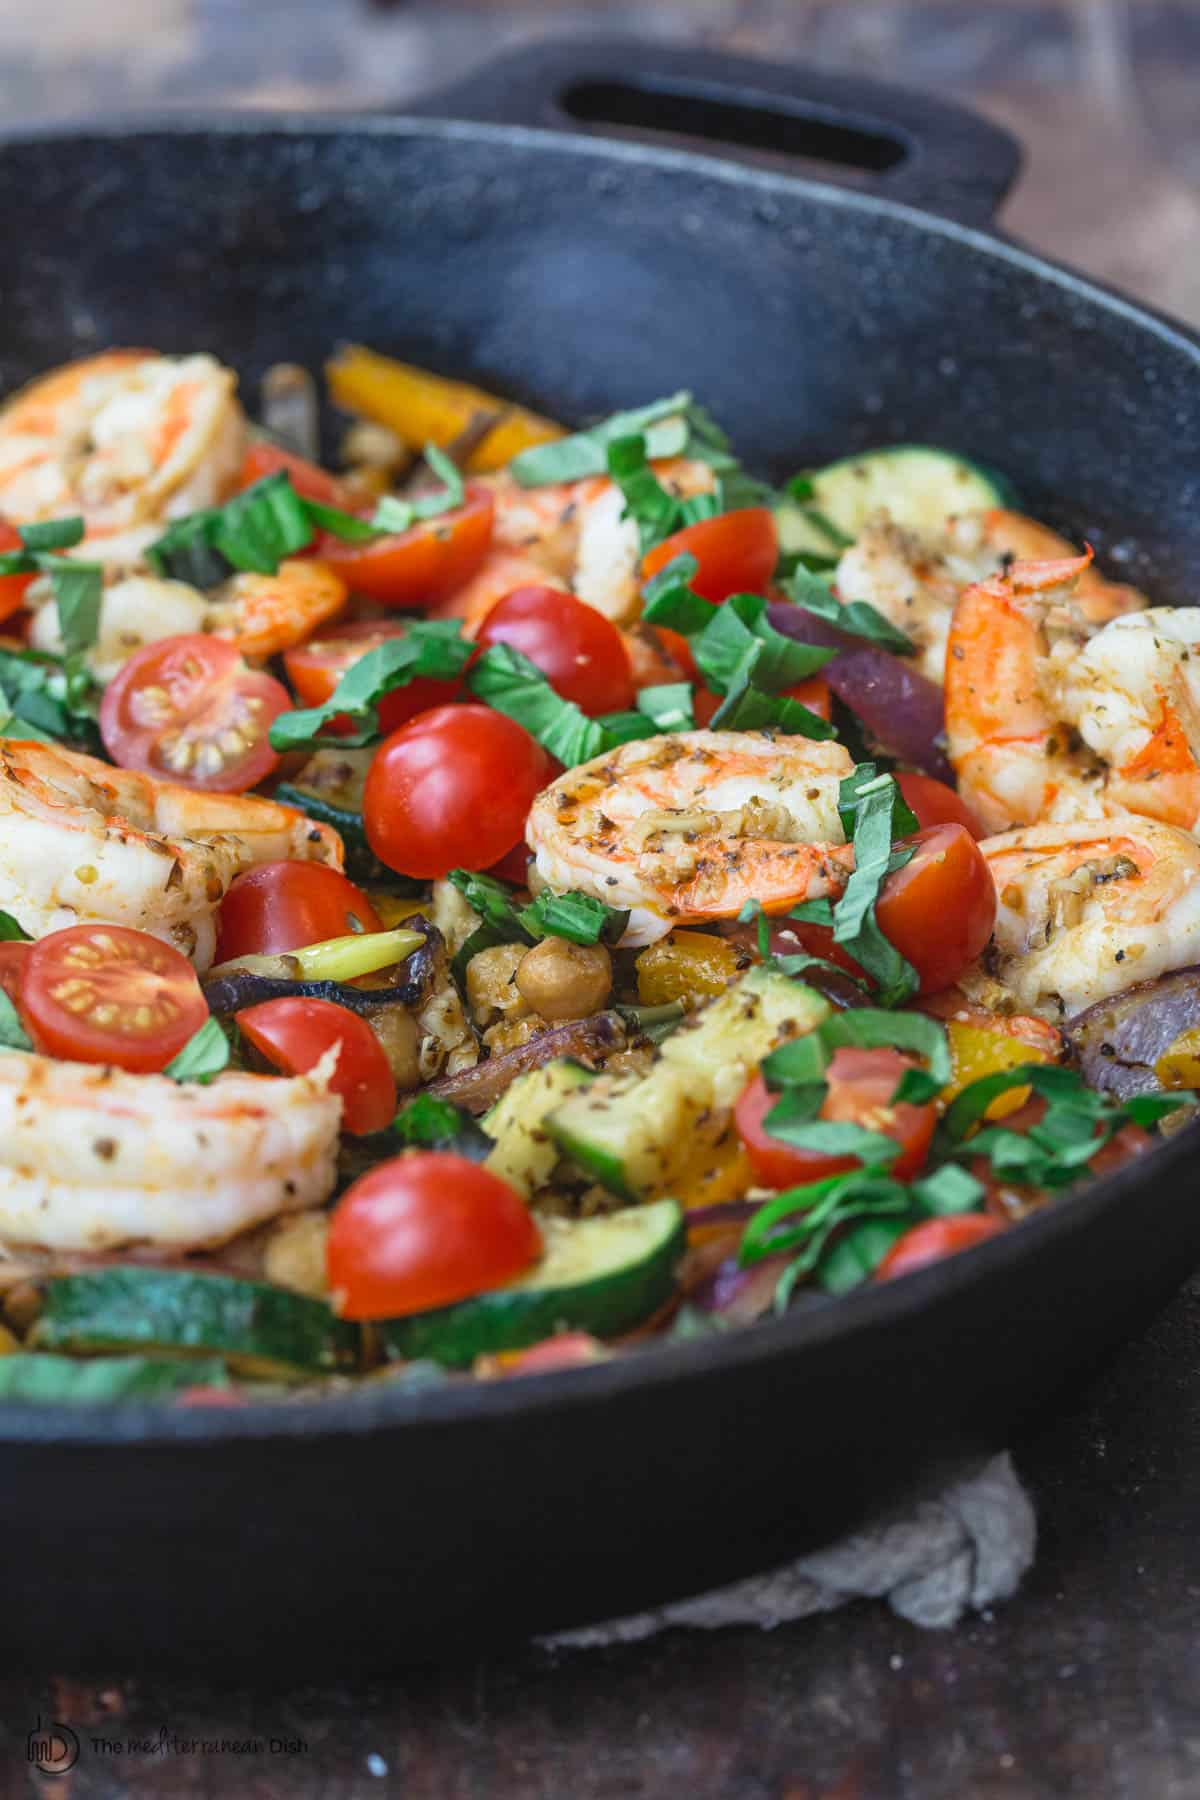 Sauteed shrimp and zucchini